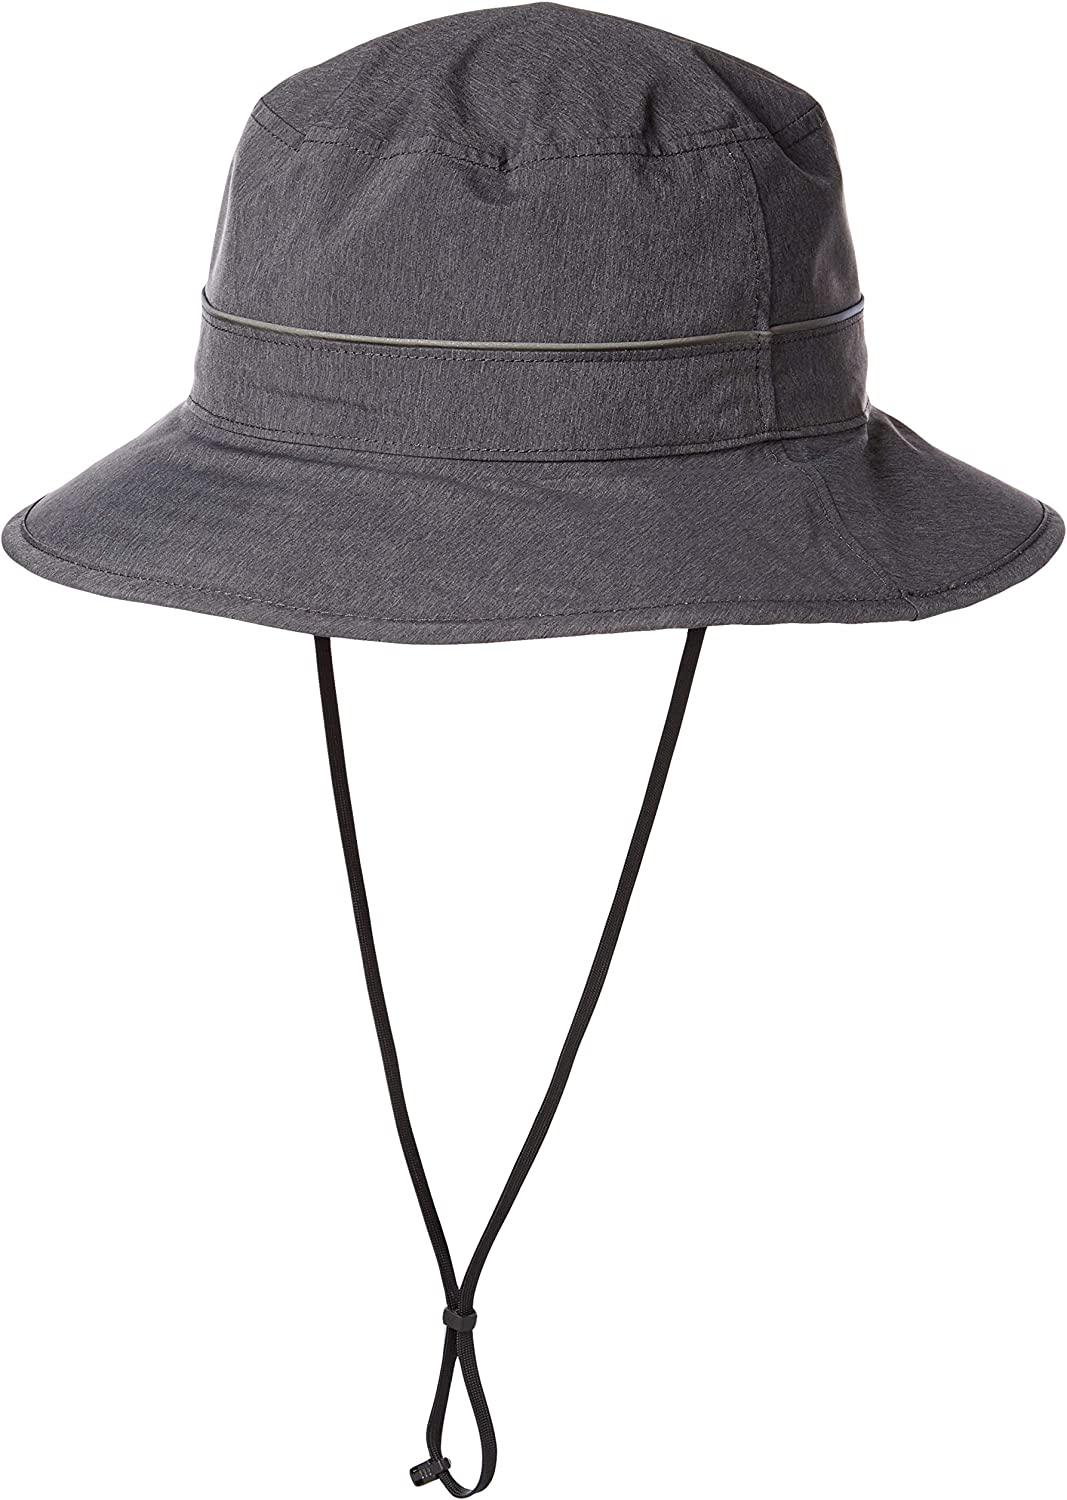 Sunday Afternoons Max 86% OFF Daydream Direct stock discount Bucket Hat